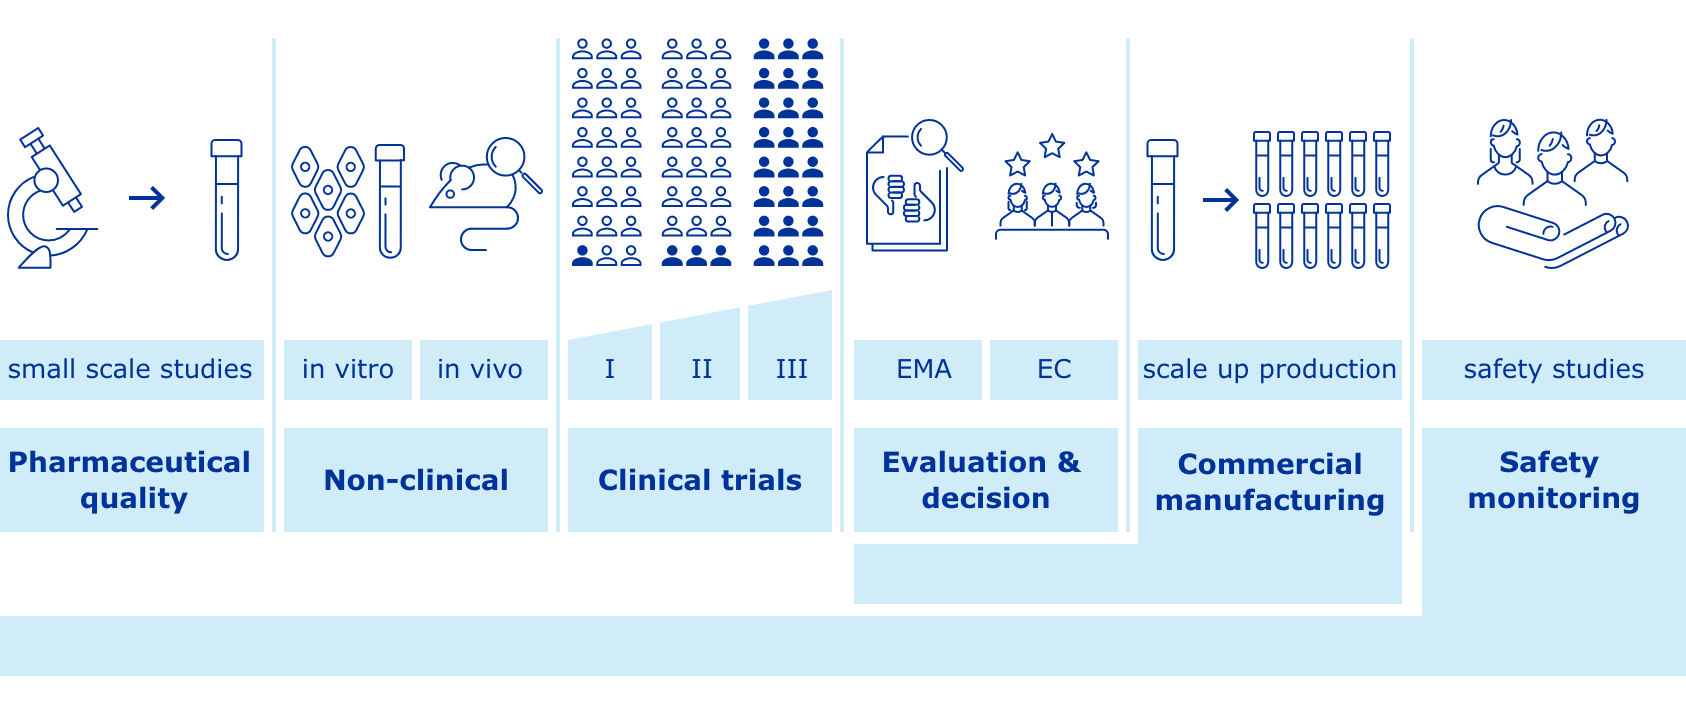 Figure 1: Overview of vaccine development and approval stages